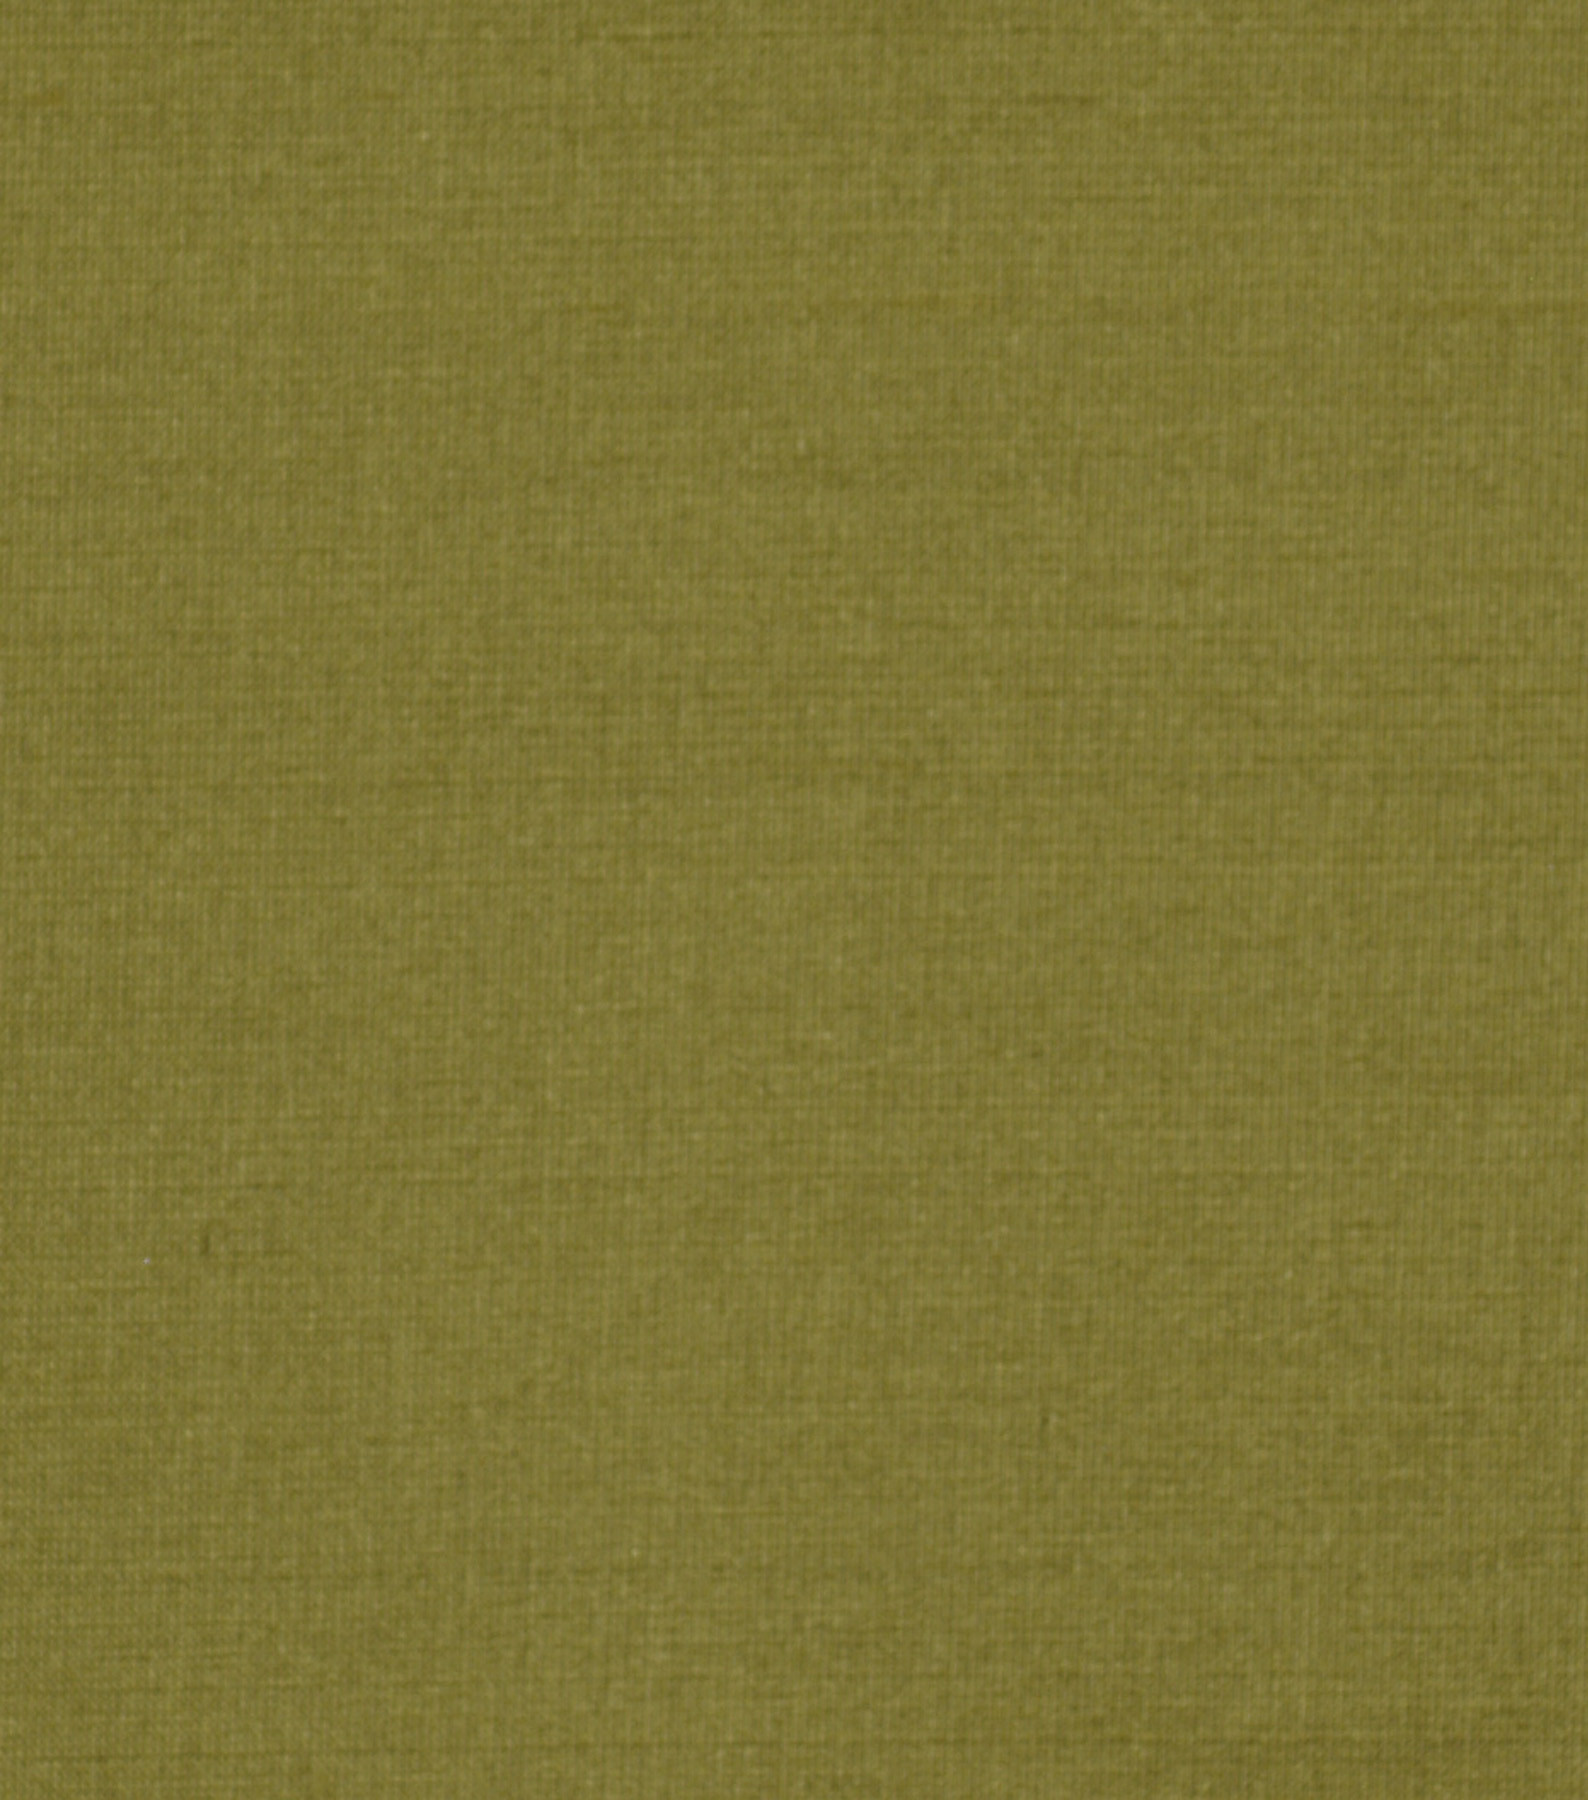 Home Decor 8\u0022x8\u0022 Fabric Swatch-Solid Fabric Signature Series Kalin Leaf